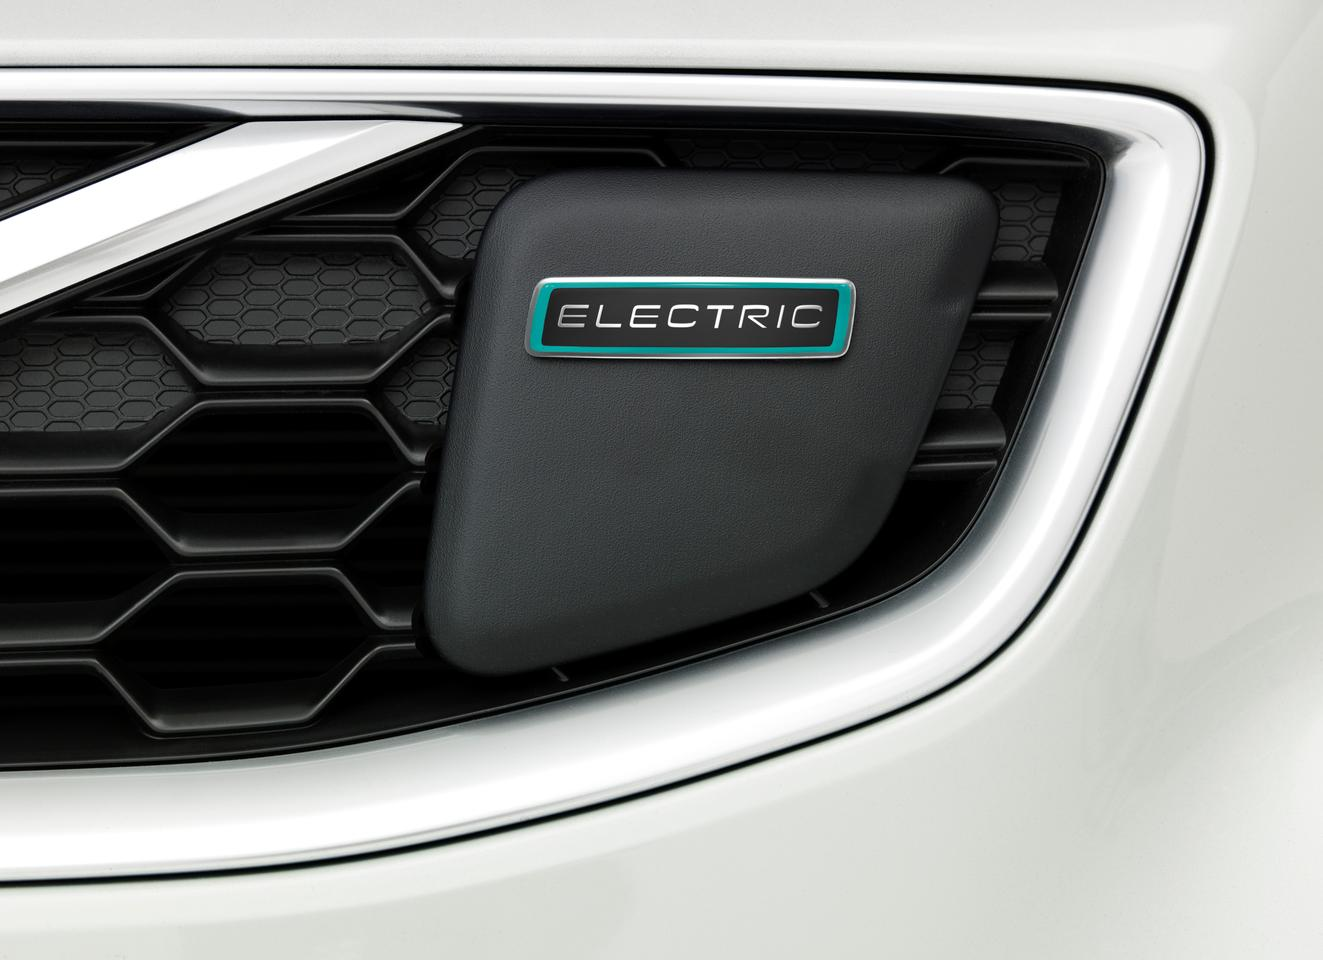 A plug on the grille provides the charging interface